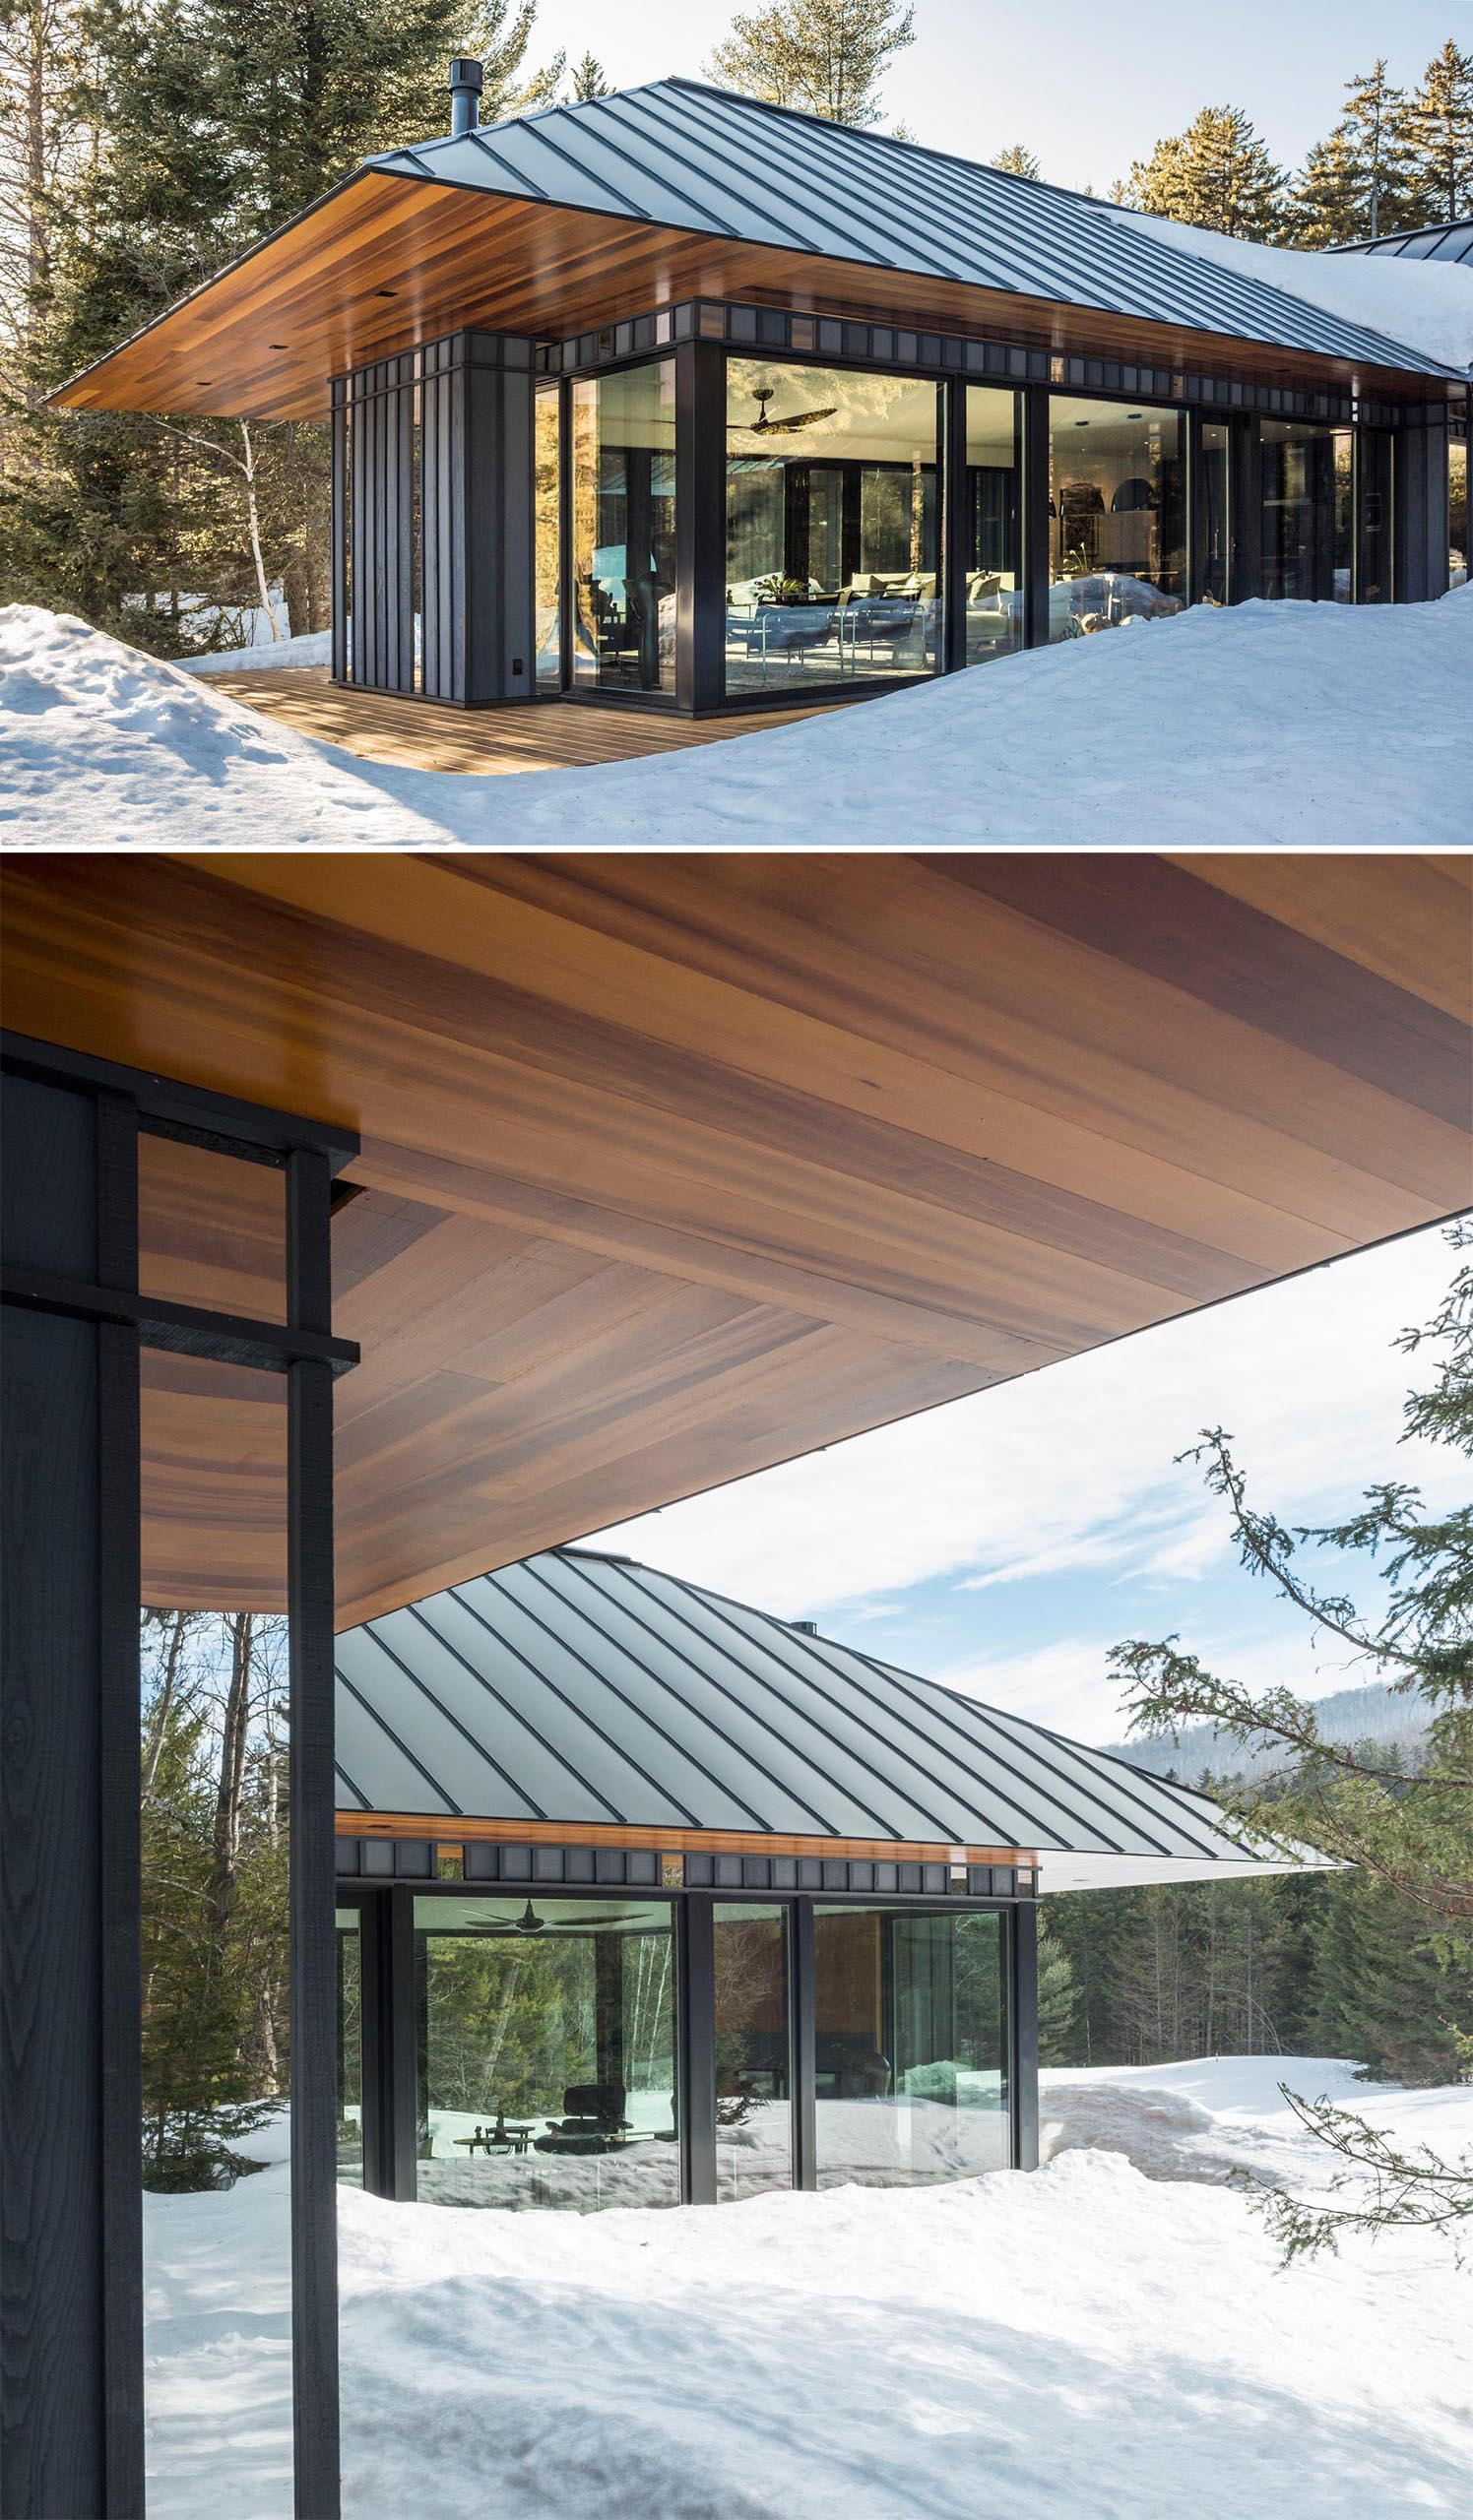 This modern home has standing seam black metal roof, and a knife-edged cedar soffit that's aligned to the cedar deck below.